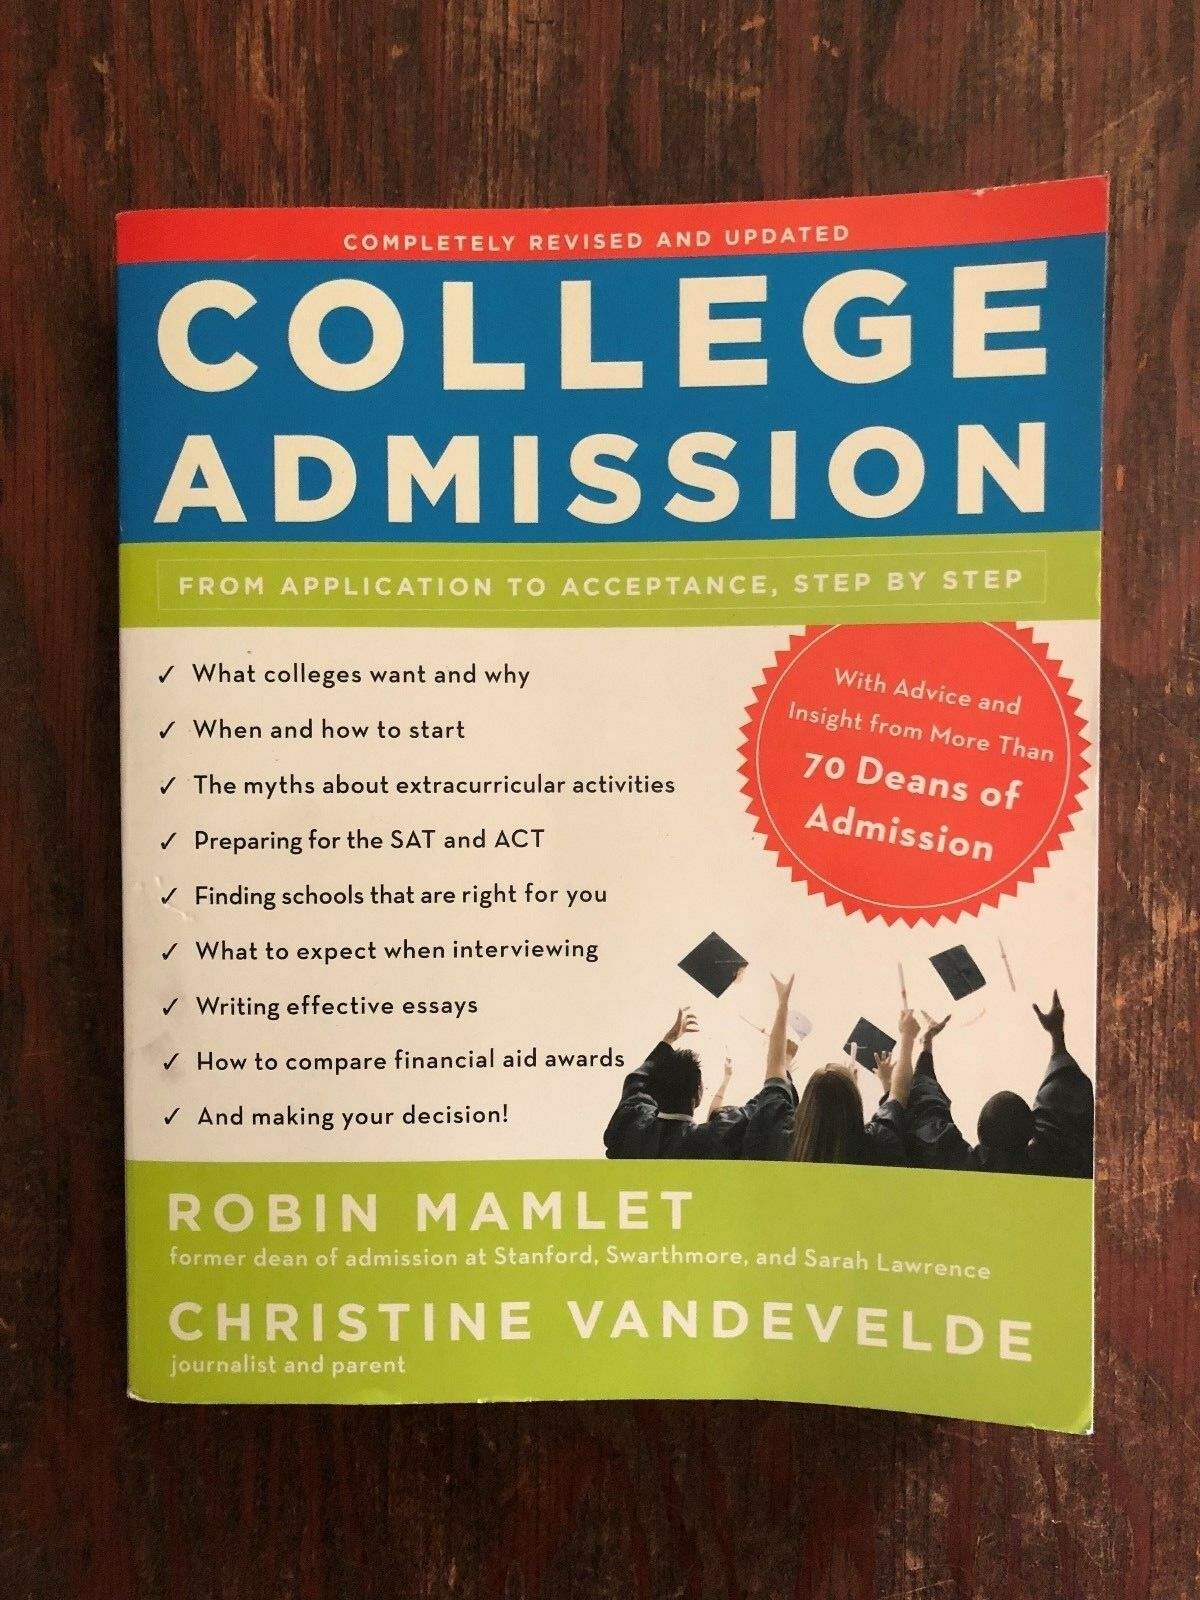 COLLEGE ADMISSION From Application to Acceptance, Step by Step BOOK Robin Mamlet |